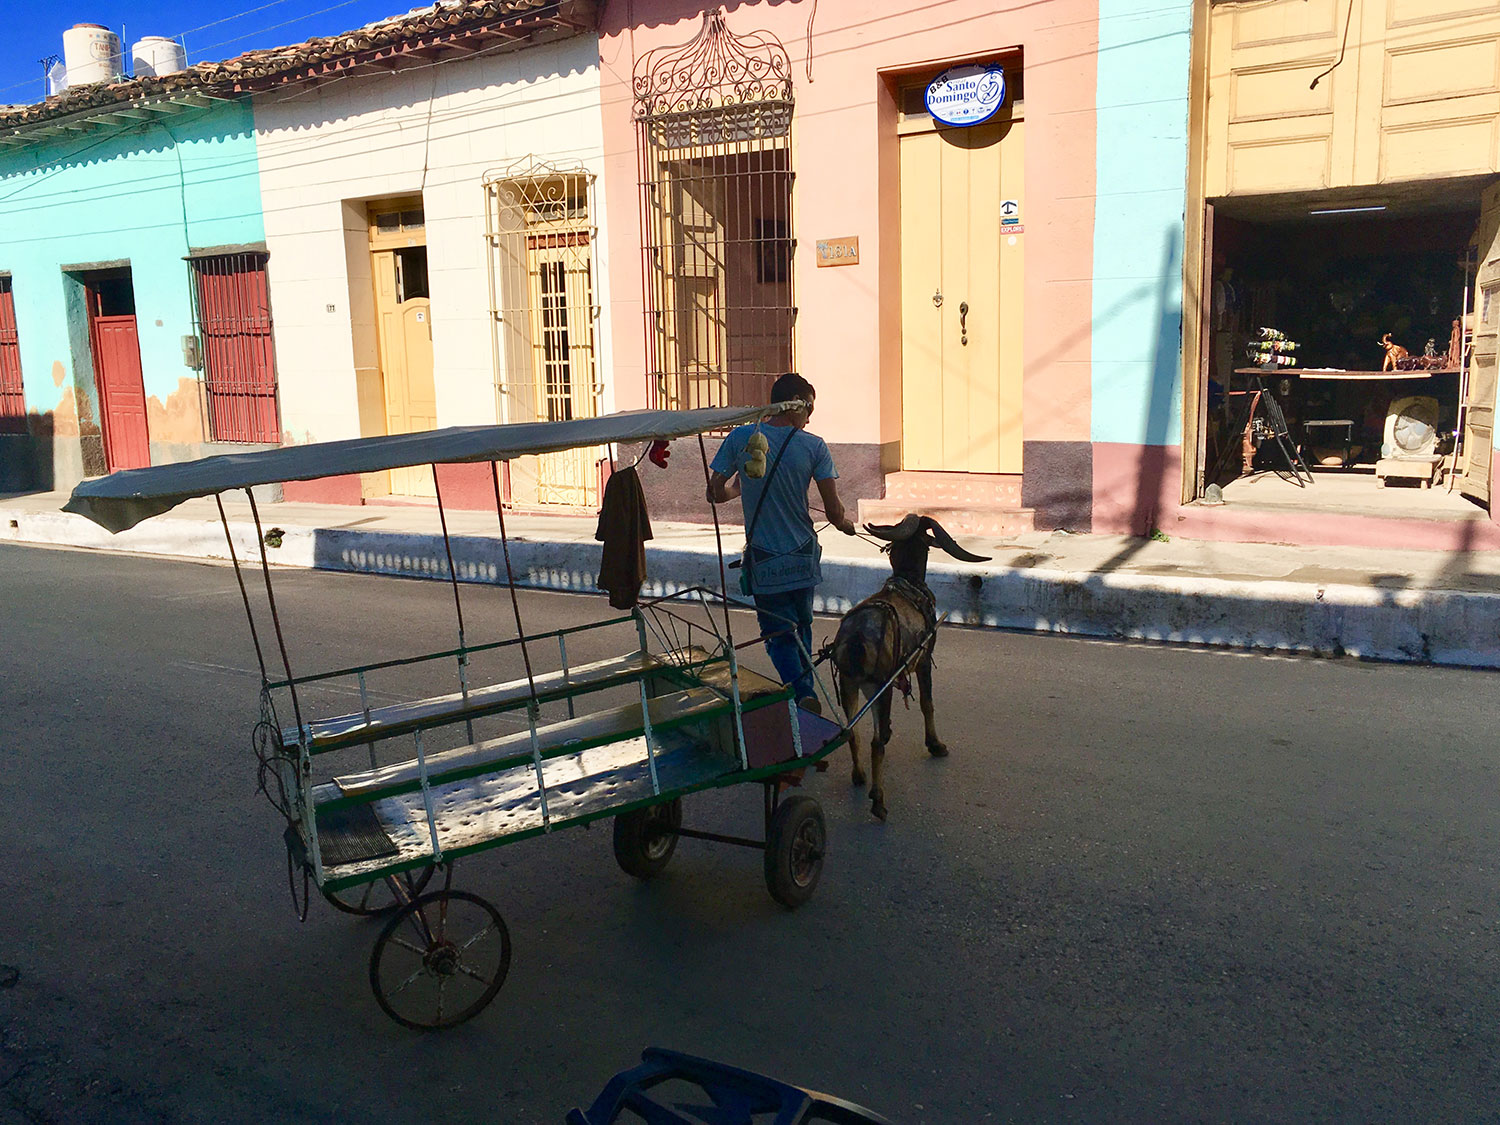 Goat rides for children are popular in Cuba as a form of entertainment.